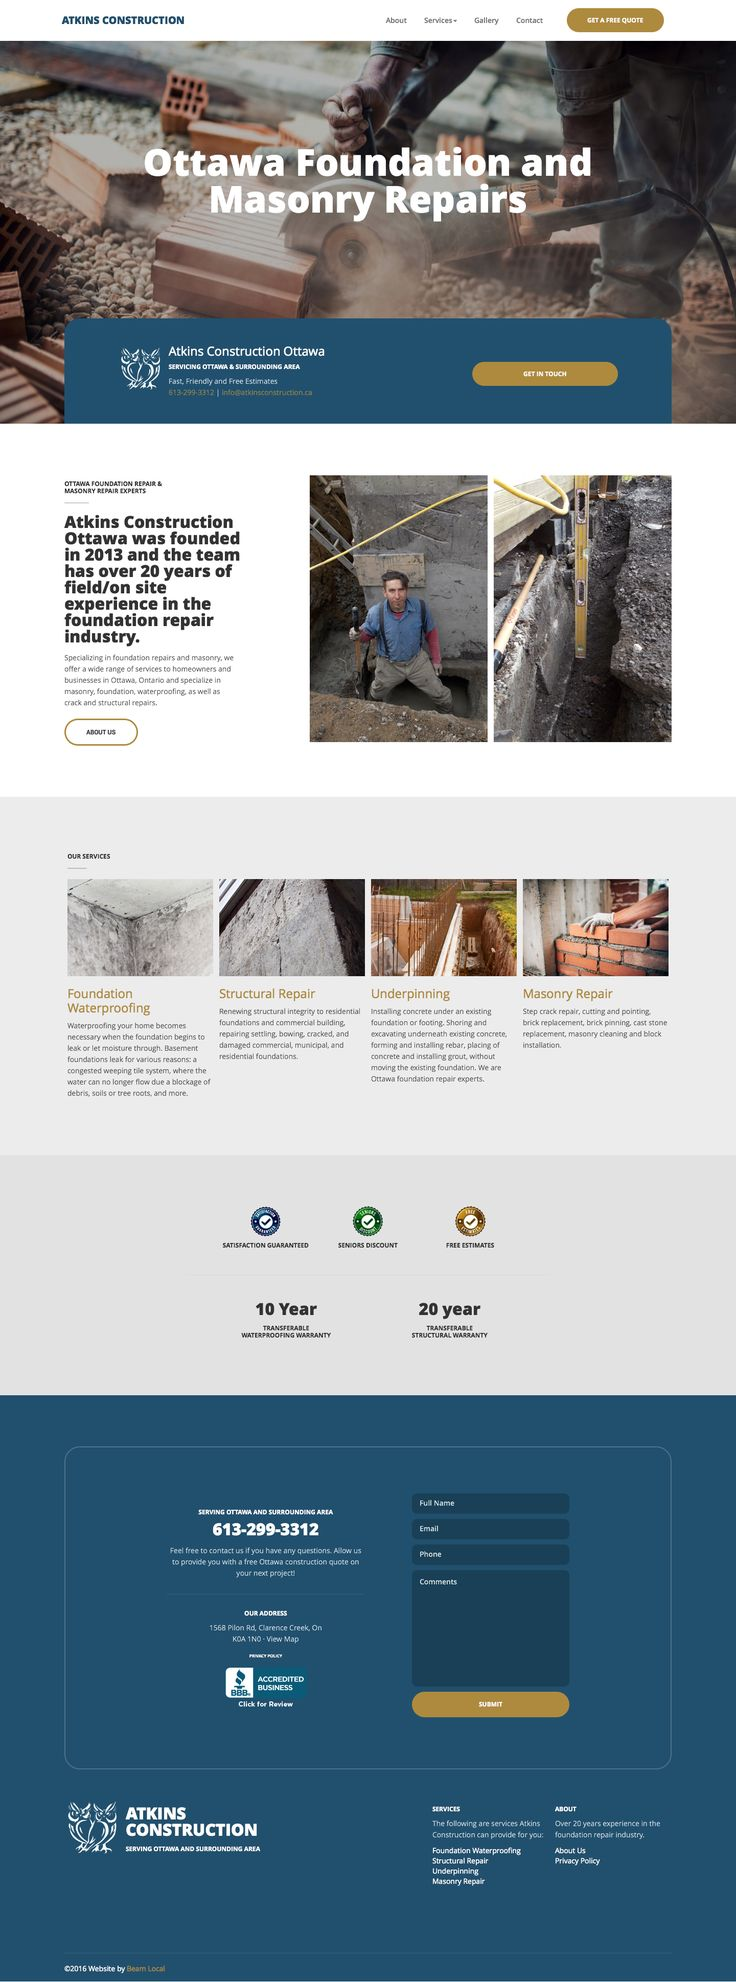 Looking for top trends in contractor website designs? Want to know what makes a good construction web design stand out? Check out our definitive list.